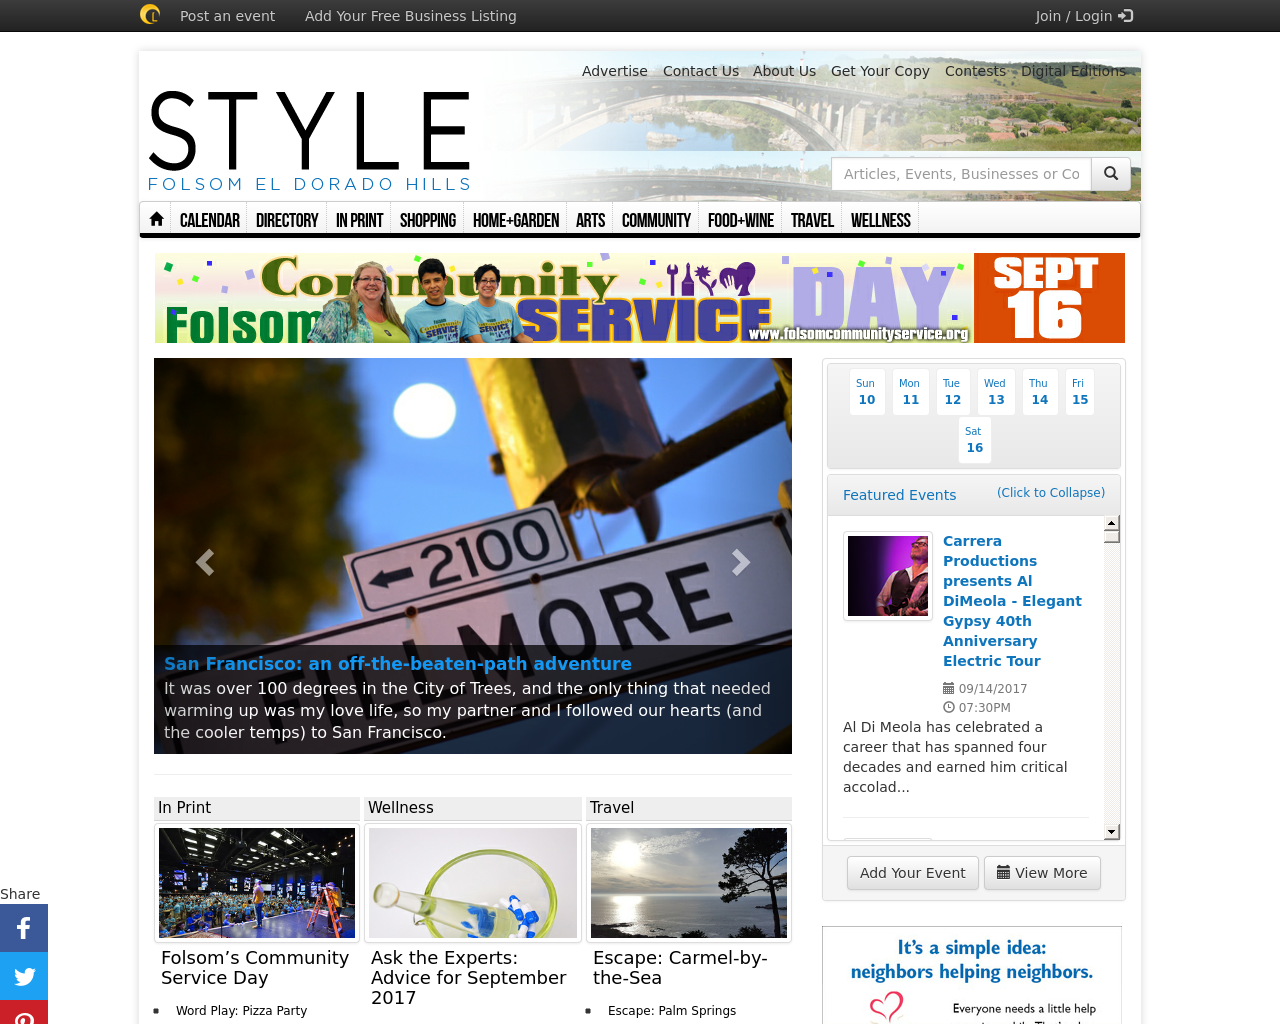 Style-Folsom-El-Dorado-Hills-Advertising-Reviews-Pricing